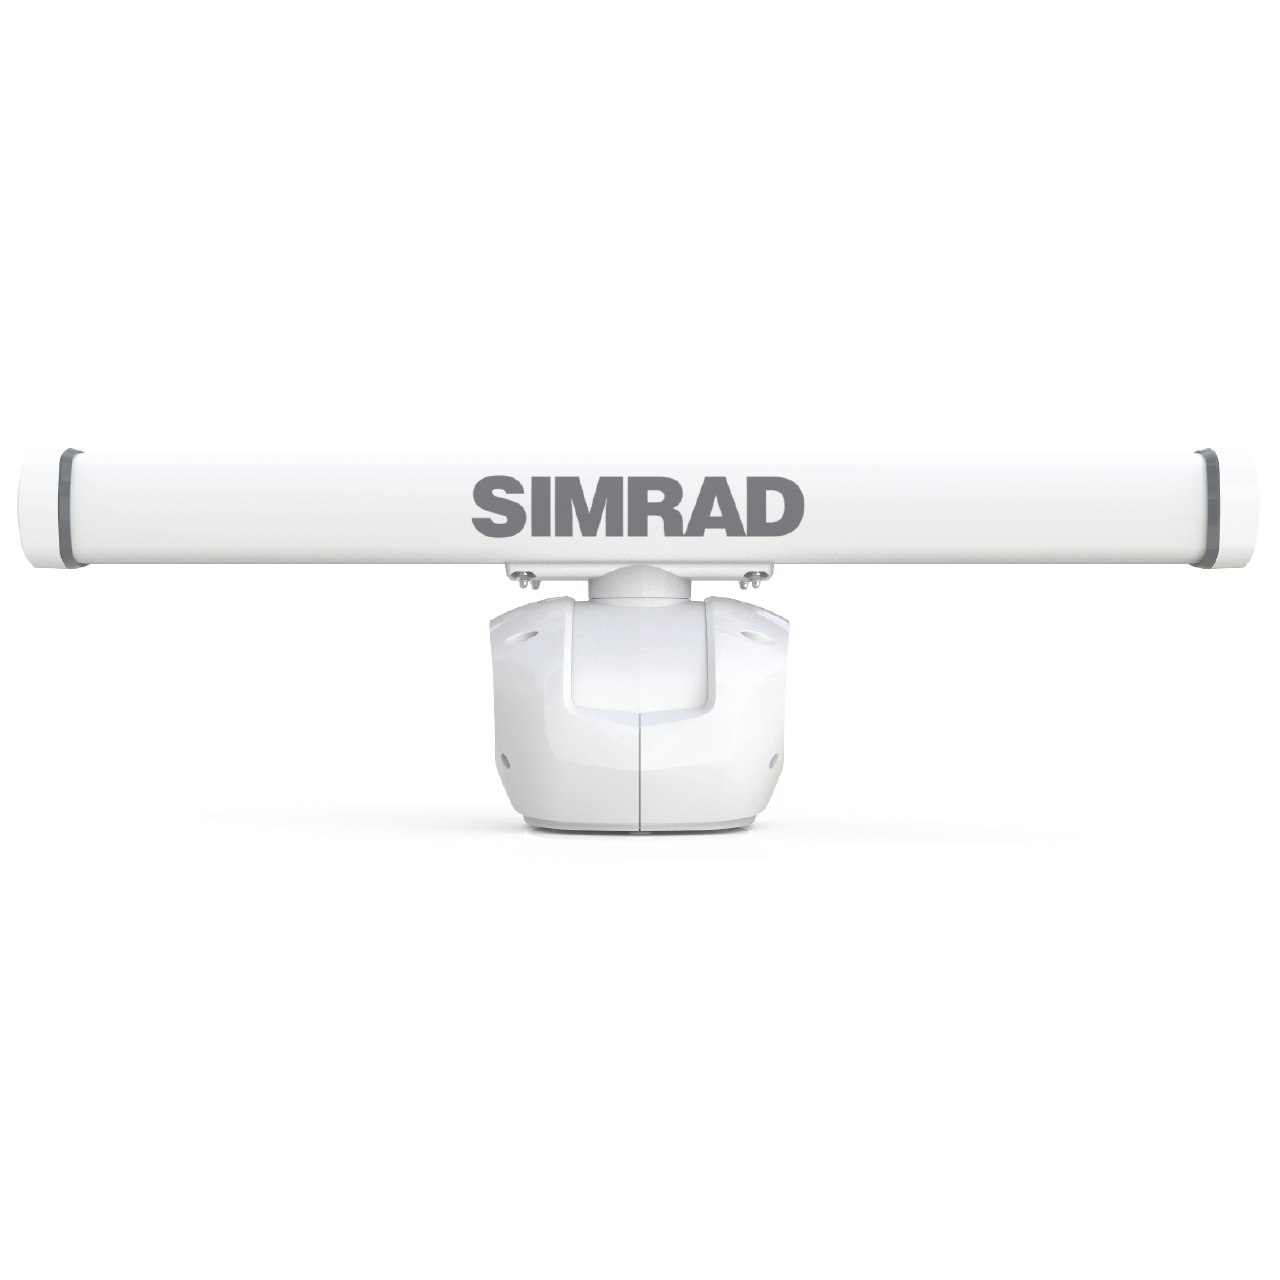 Simrad HALO 4 Pulse Compression Radar Front View